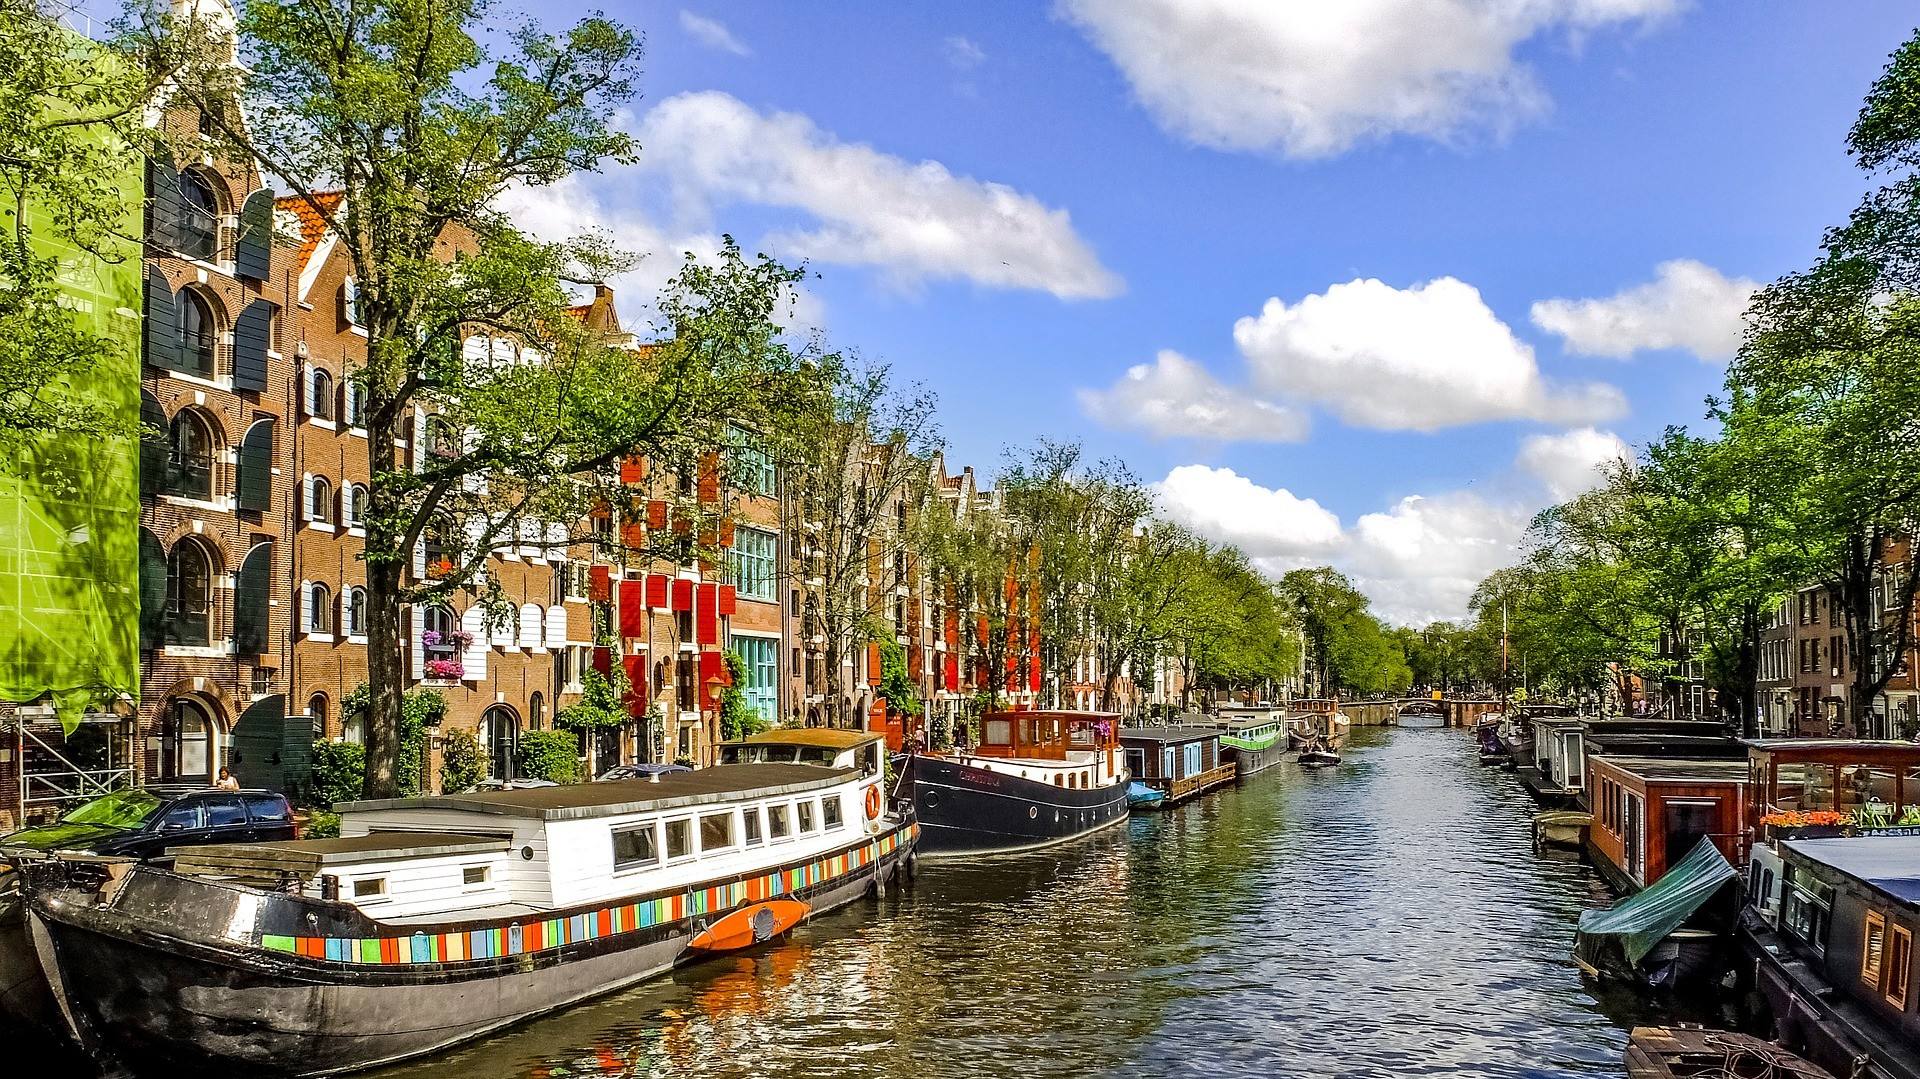 Conference 2019 in Amsterdam | September 20-21